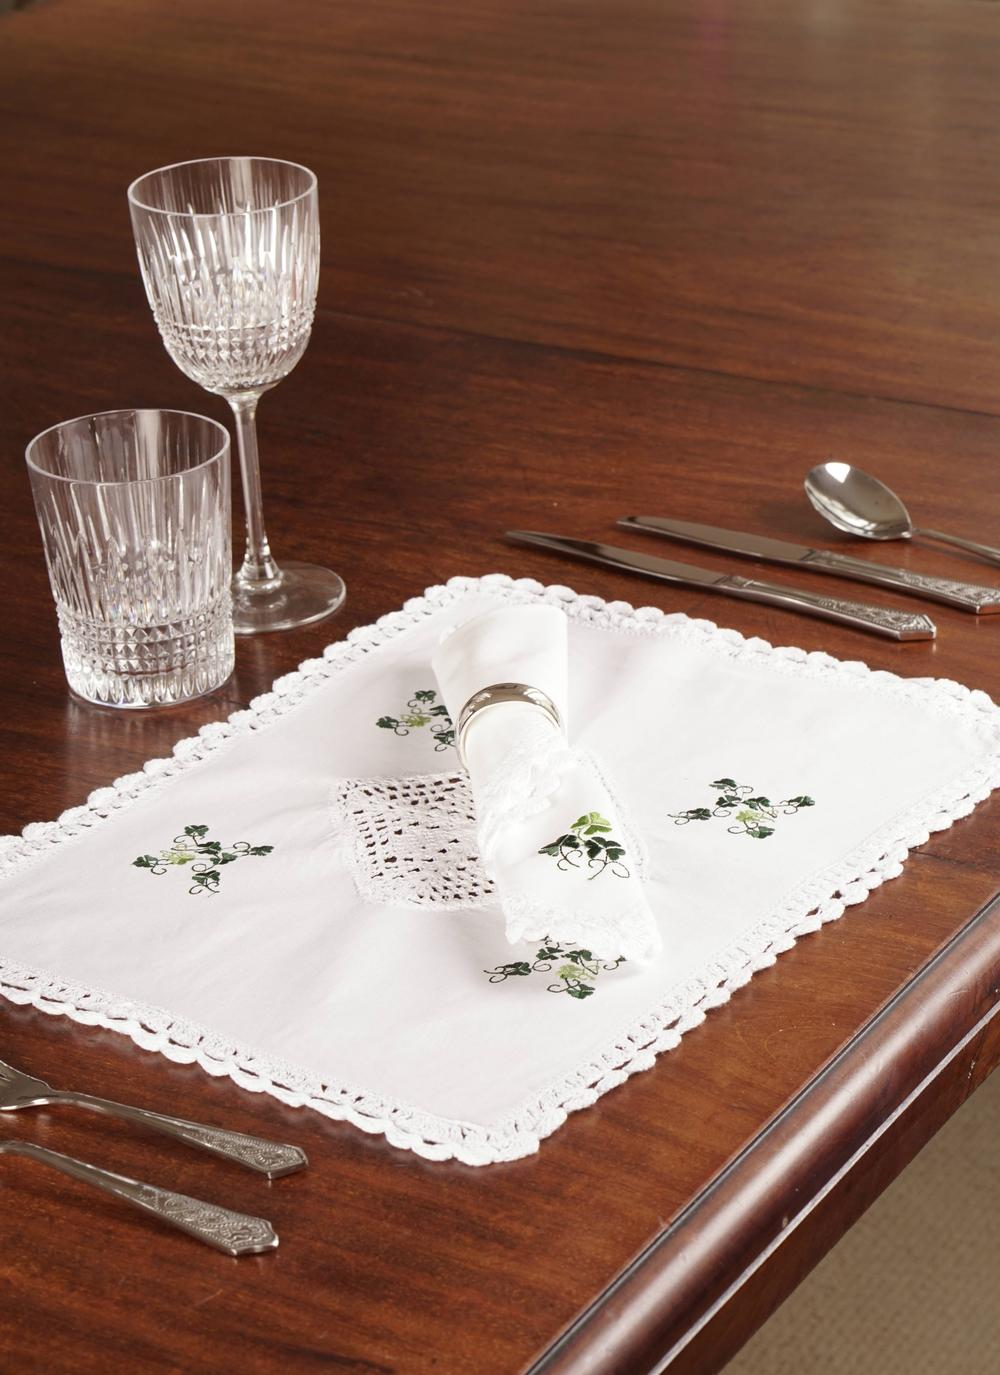 Blarney Shamrock Table Linens: Stunning shamrock table linens for your home